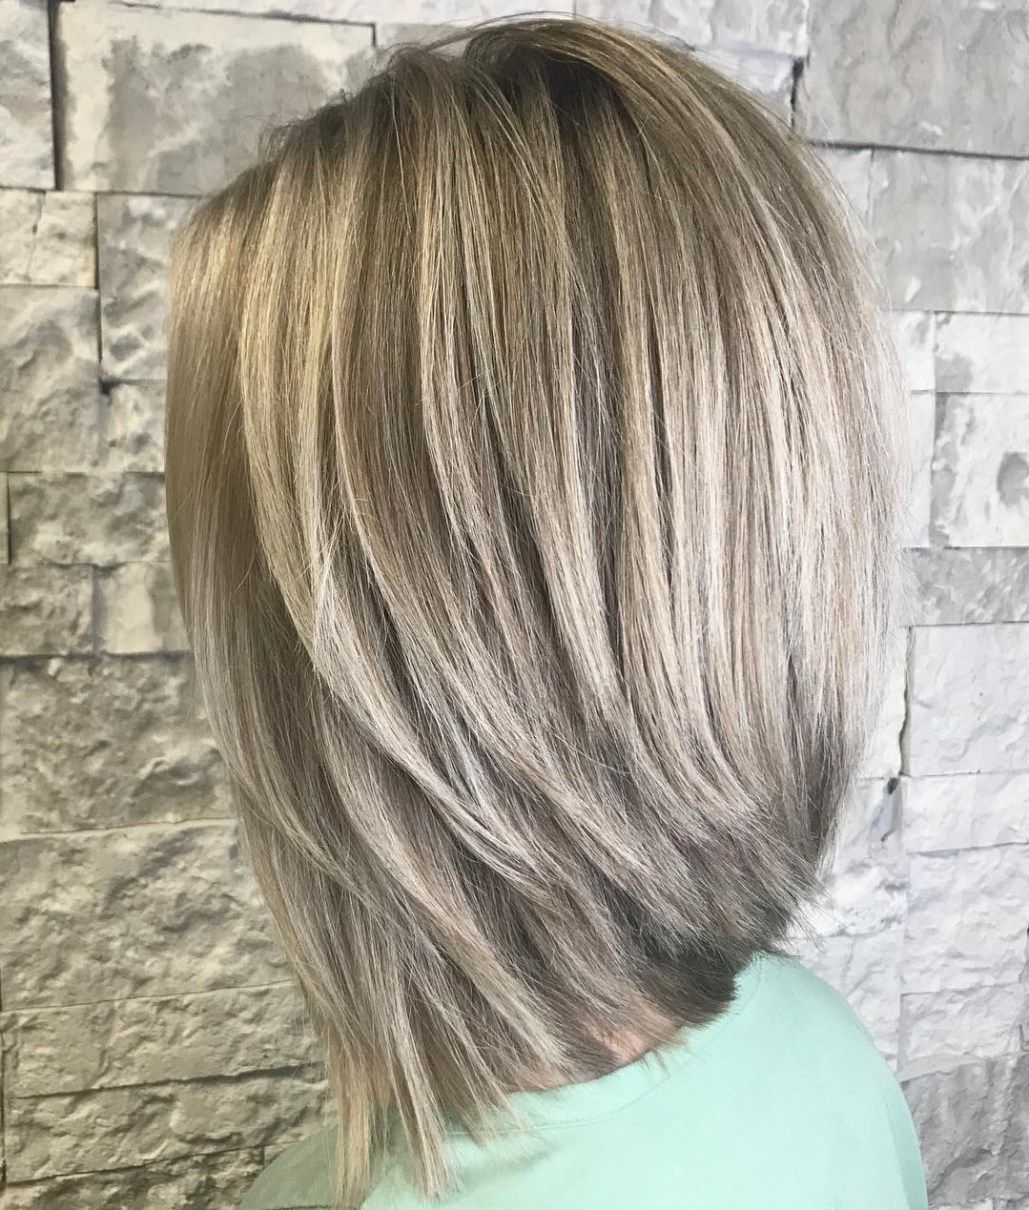 20 ways to make a long inverted bob all your own in 2019